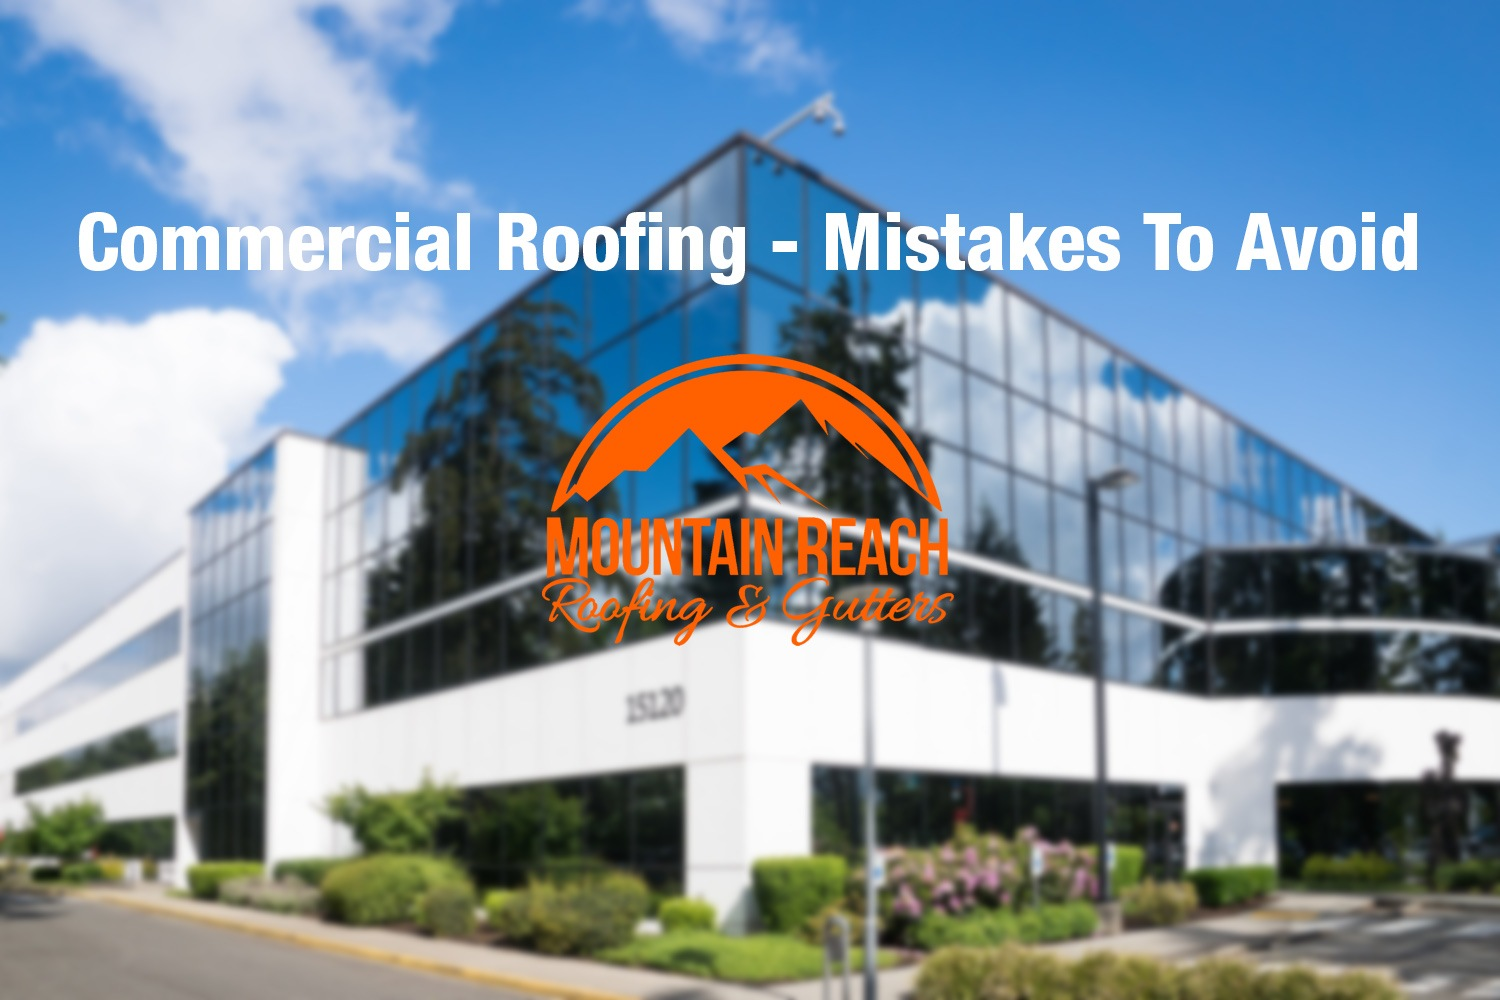 Commercial Roofing - Mistakes To Avoid